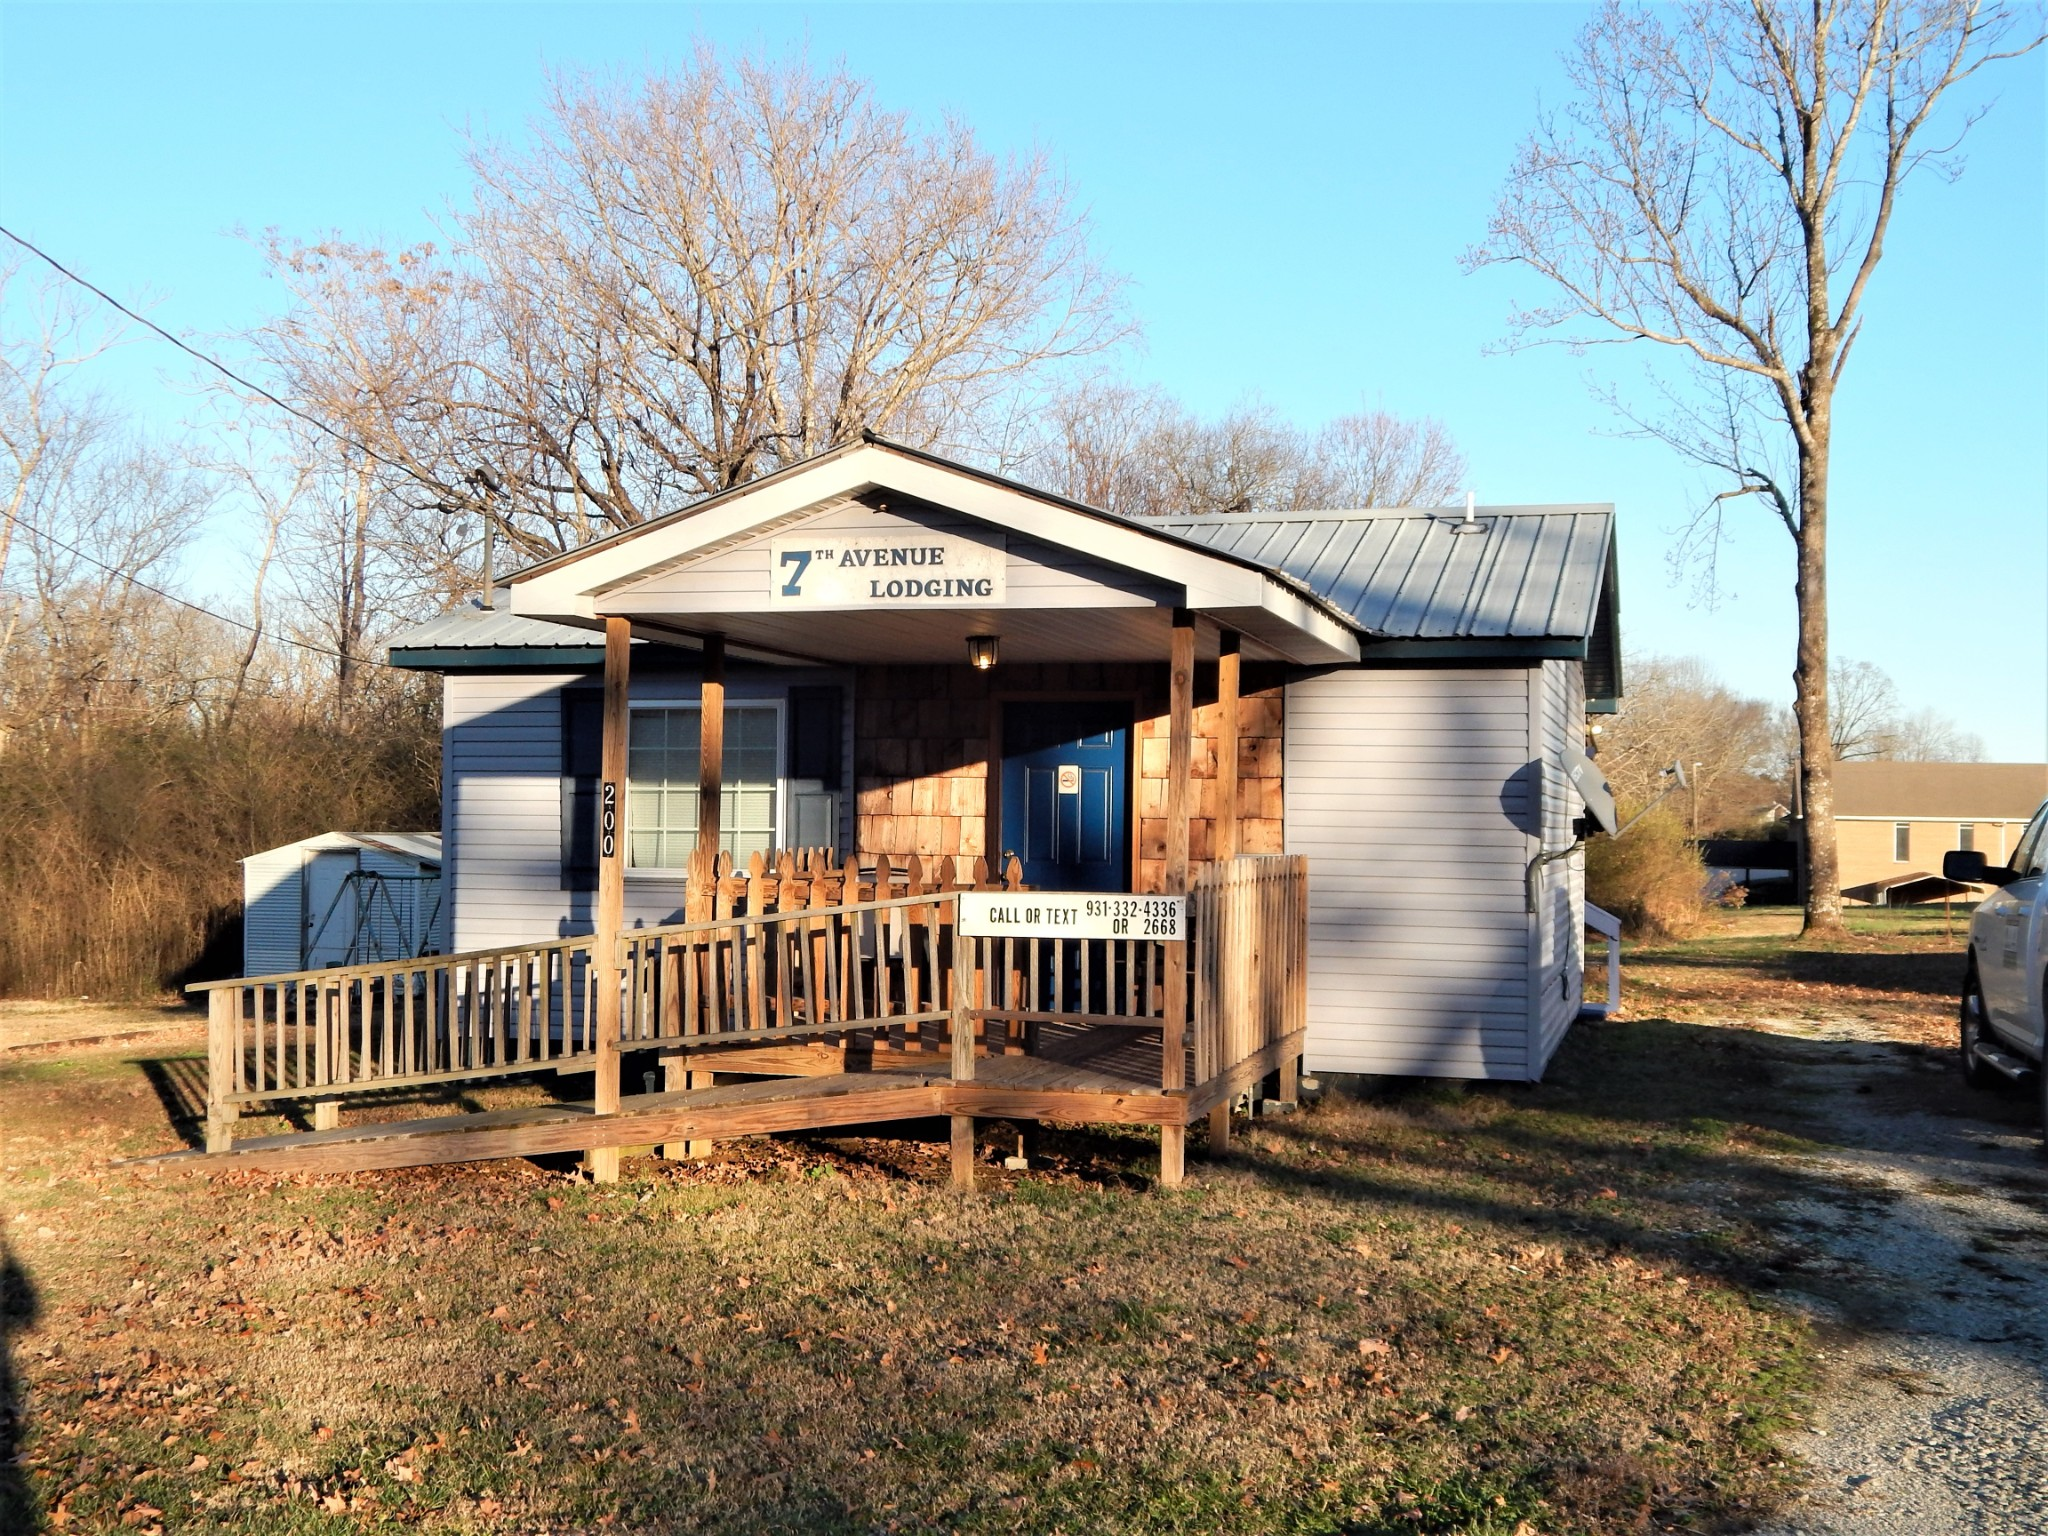 200 N. Seventh Ave Property Photo - Collinwood, TN real estate listing